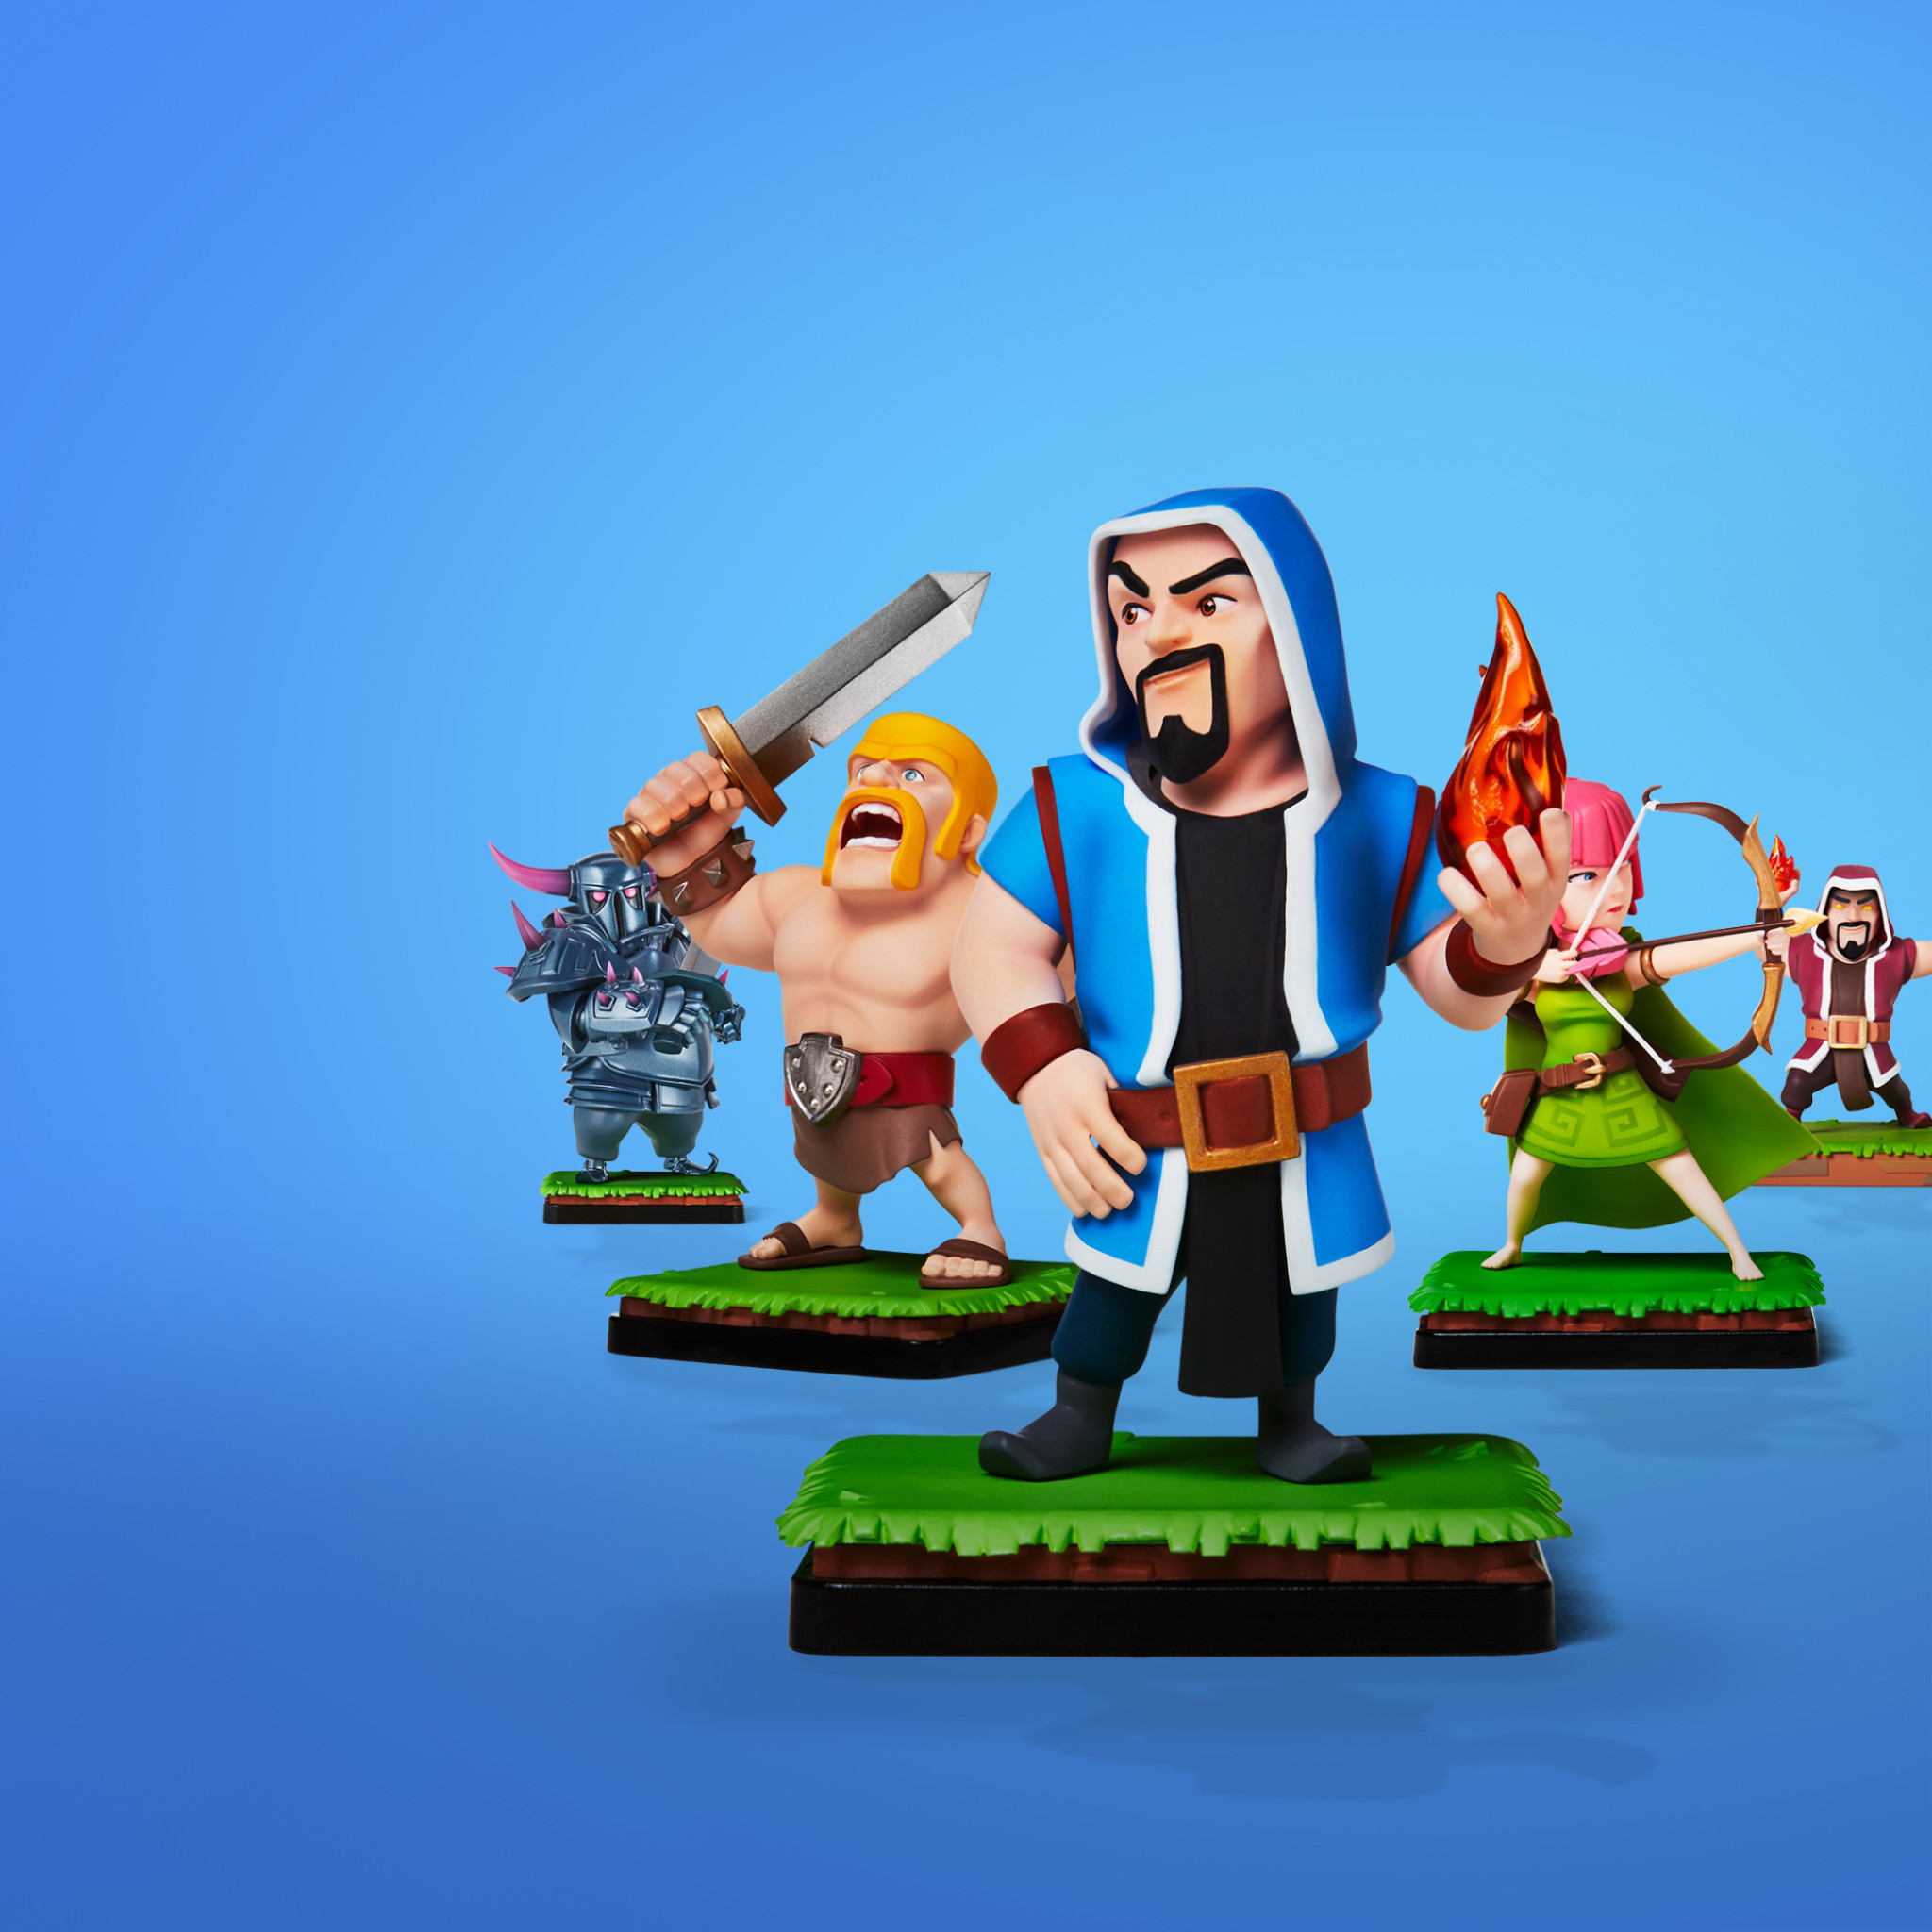 Clash of clans ios and android mobile strategy war game download clash of clans ios and android mobile strategy war game download free today stopboris Image collections